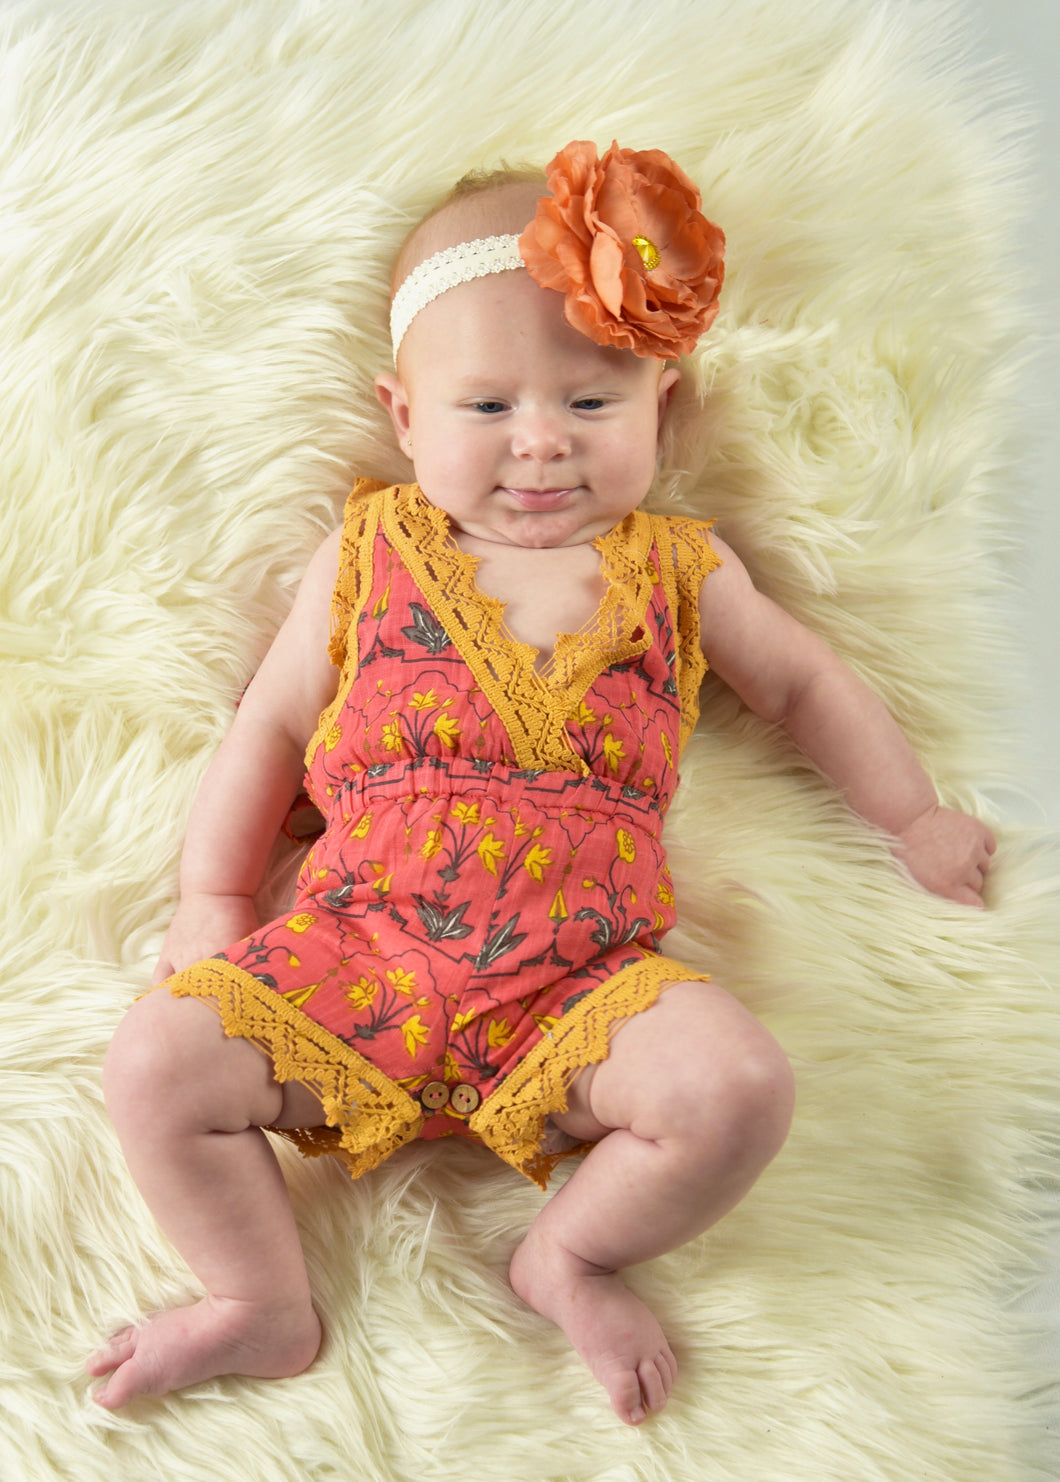 Printed Coral Playsuit with Lace Detail - Kids Wholesale Boutique Clothing, 2-pc. set - Girls Dresses, Yo Baby Wholesale - Yo Baby